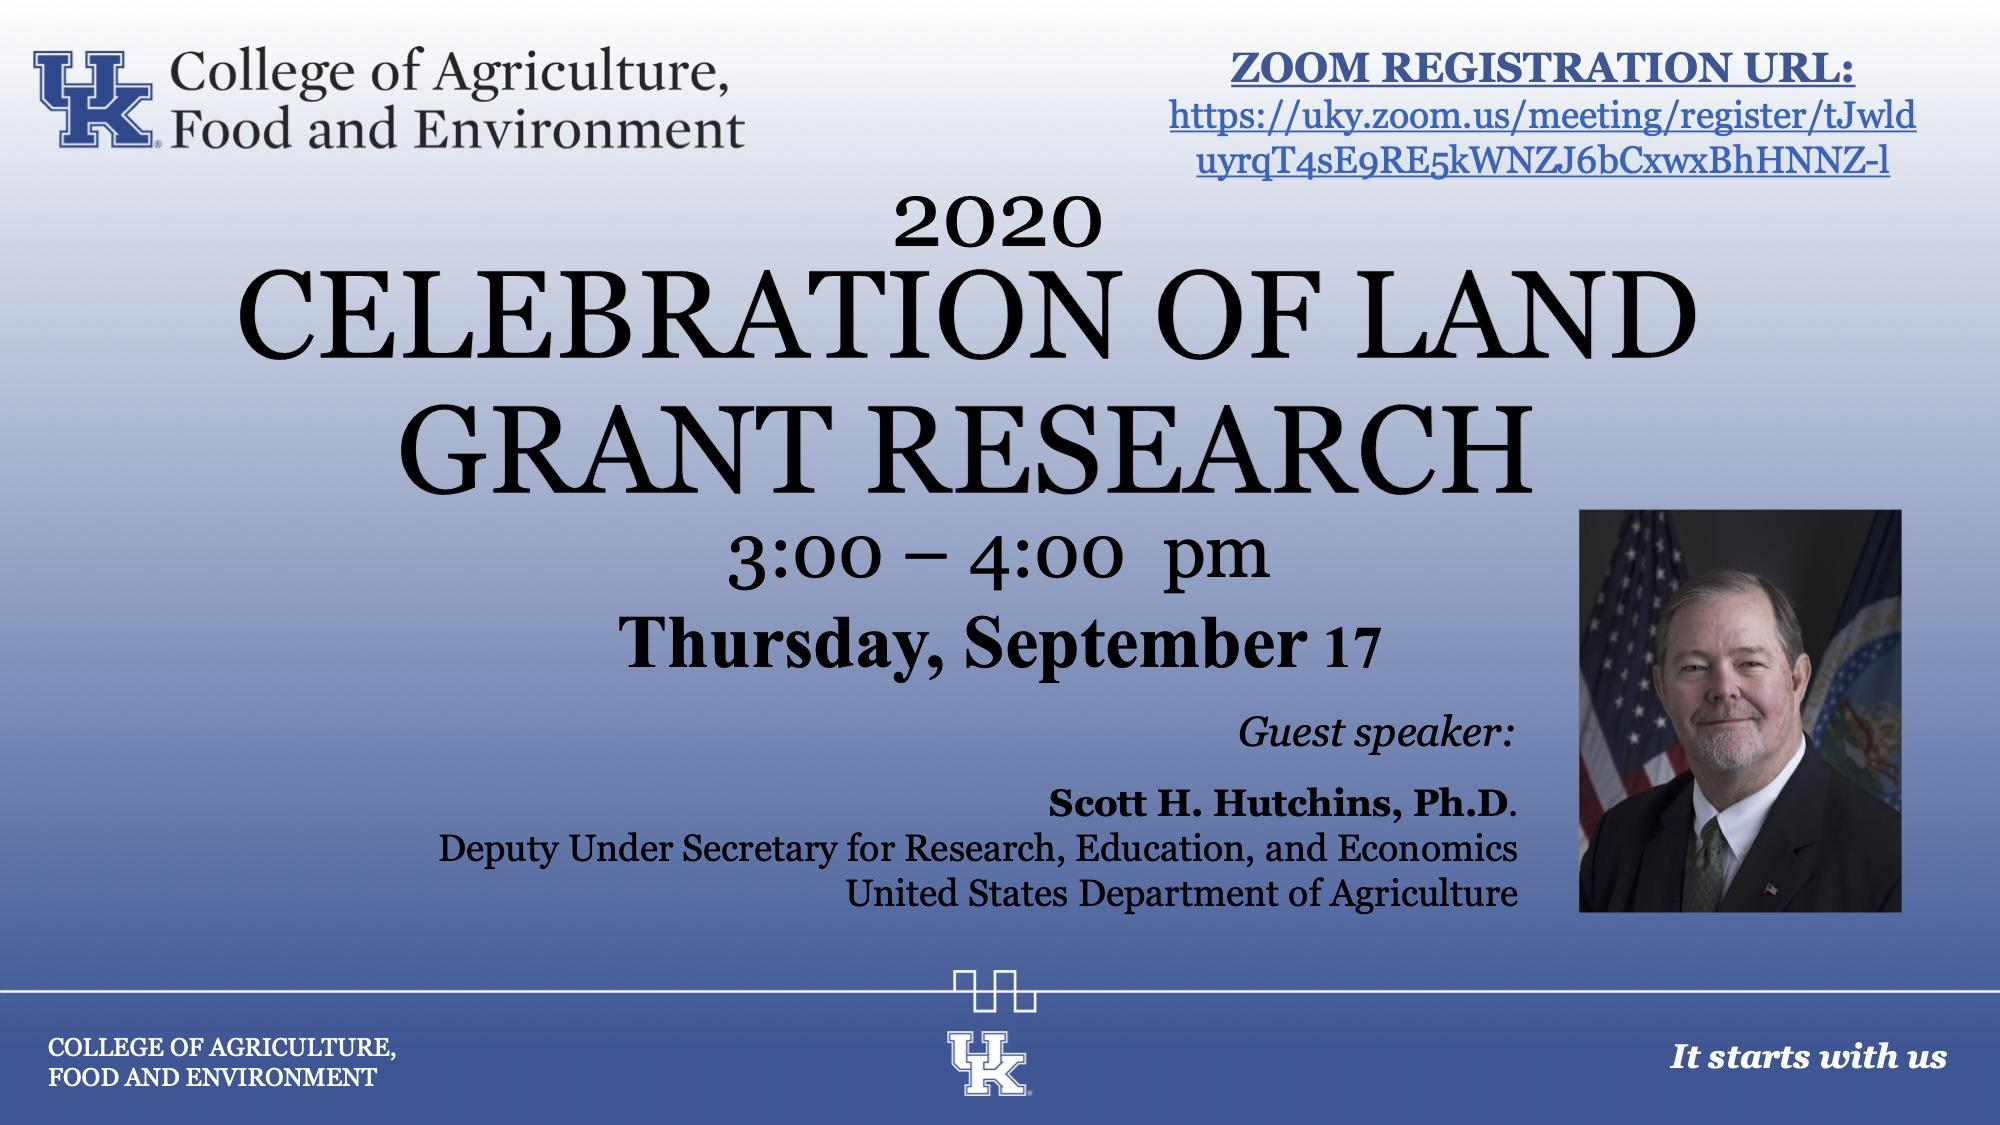 Celebration of Land Gran Research 3pm - 4pm Thursday, September 17, 2020